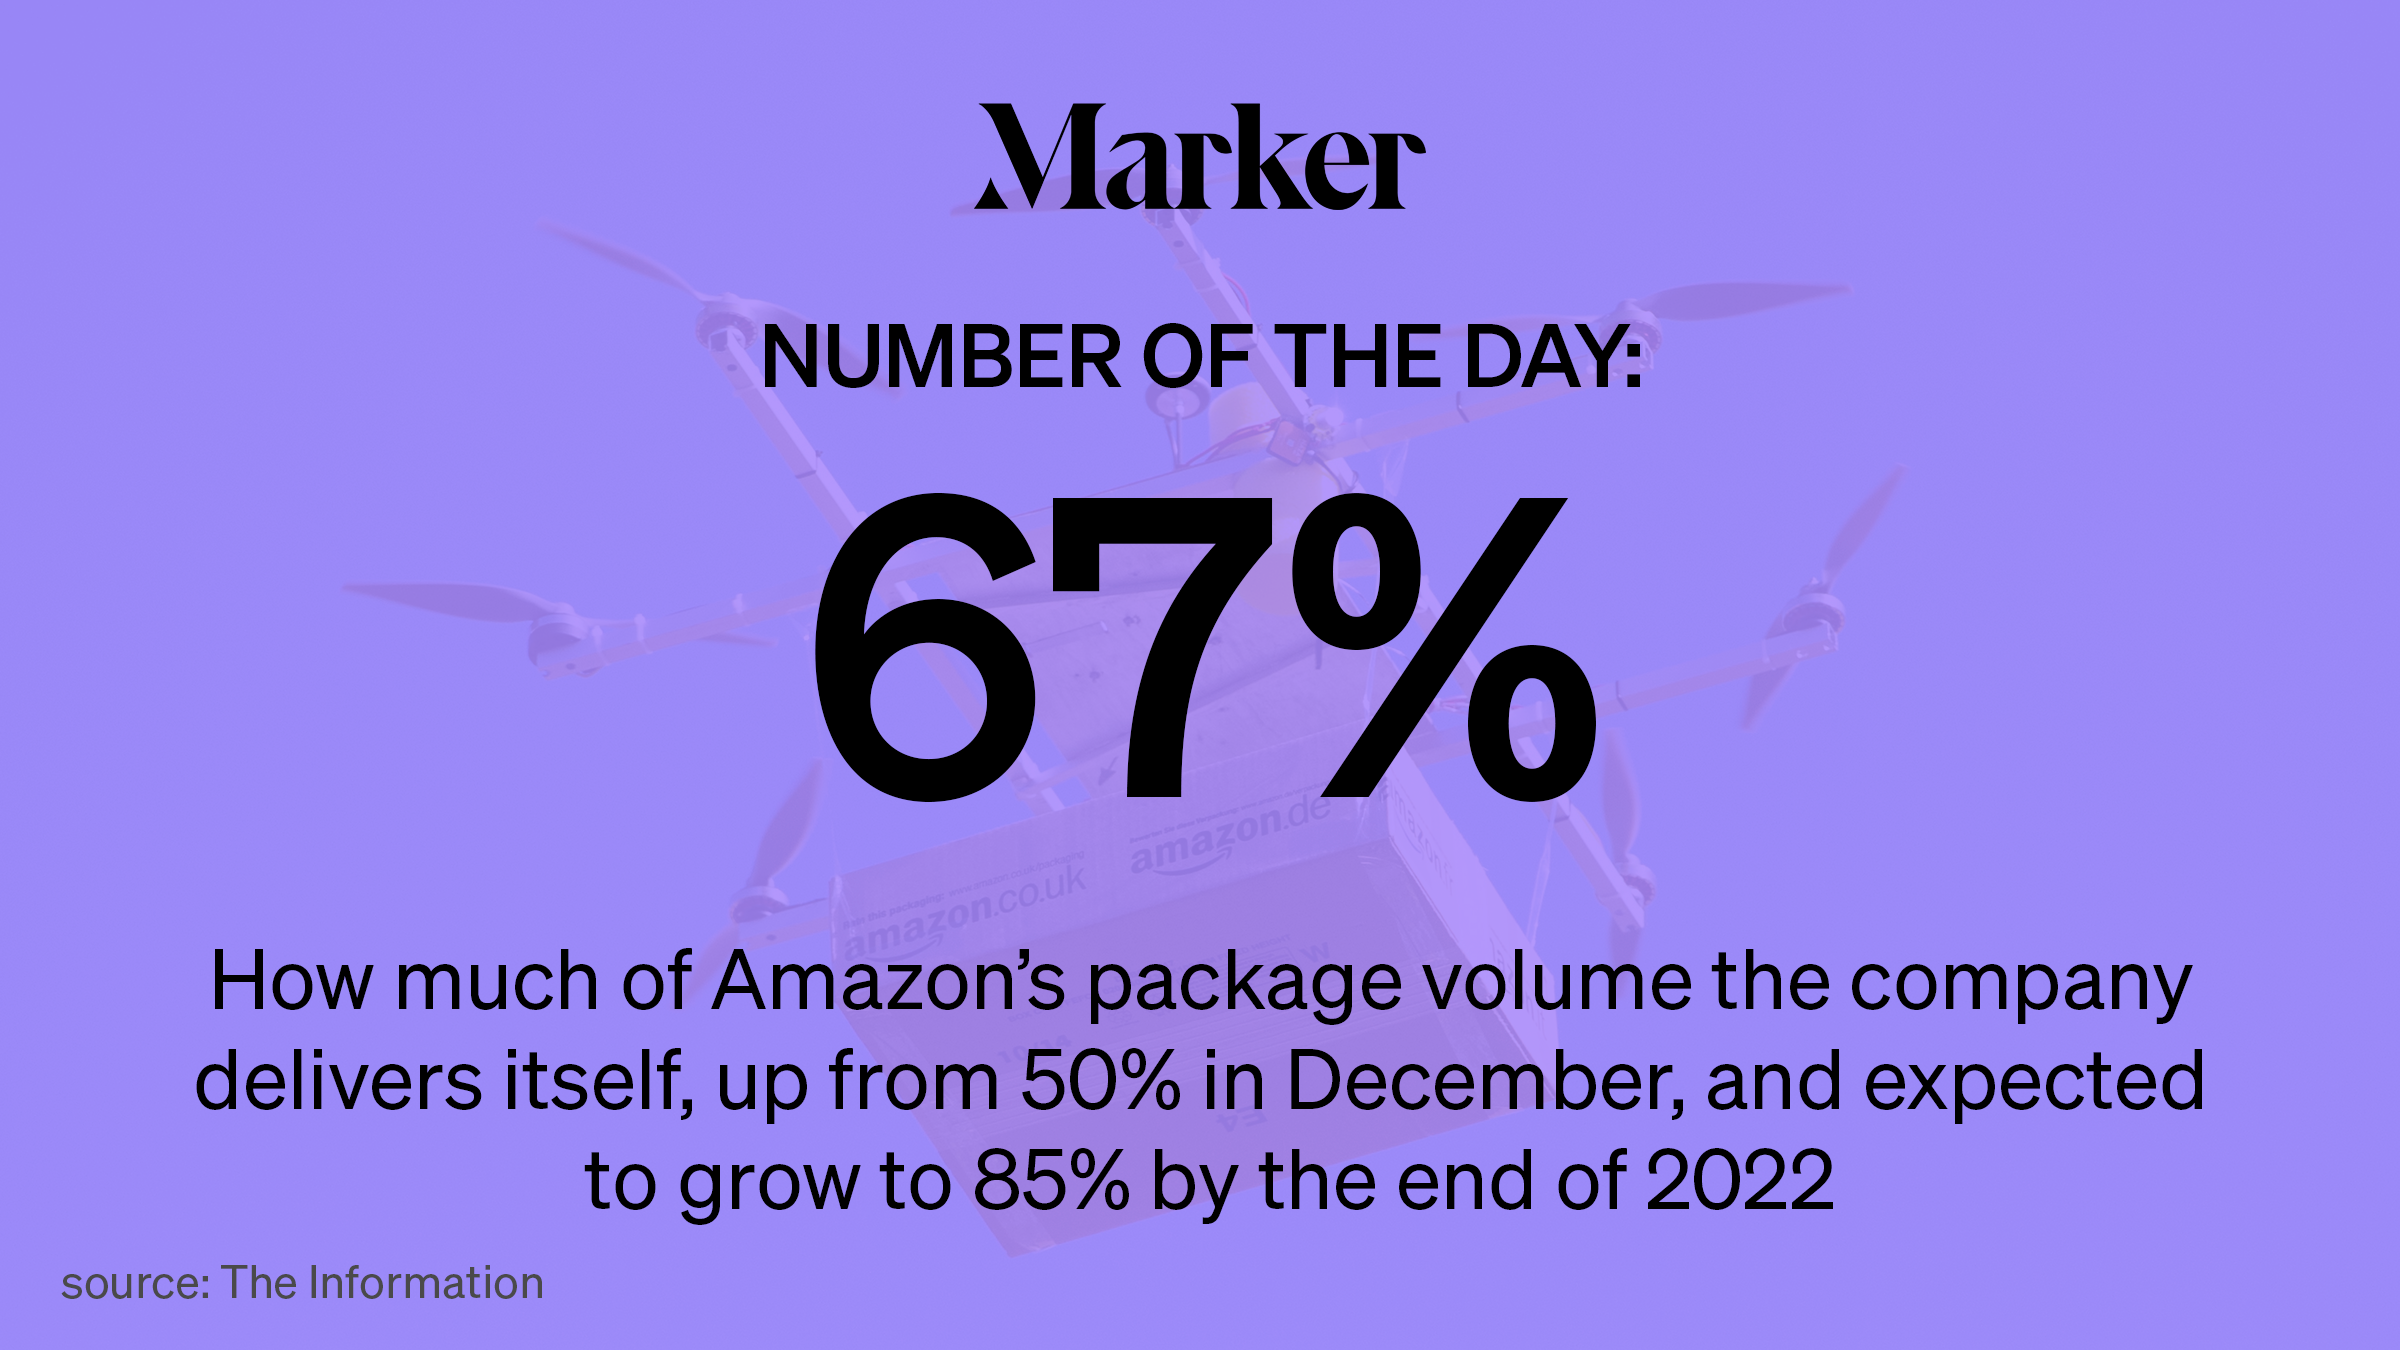 67% How much of Amazon's package volume the company delivers itself, up from 50% in Dec, and expected to grow to 85% by 2022